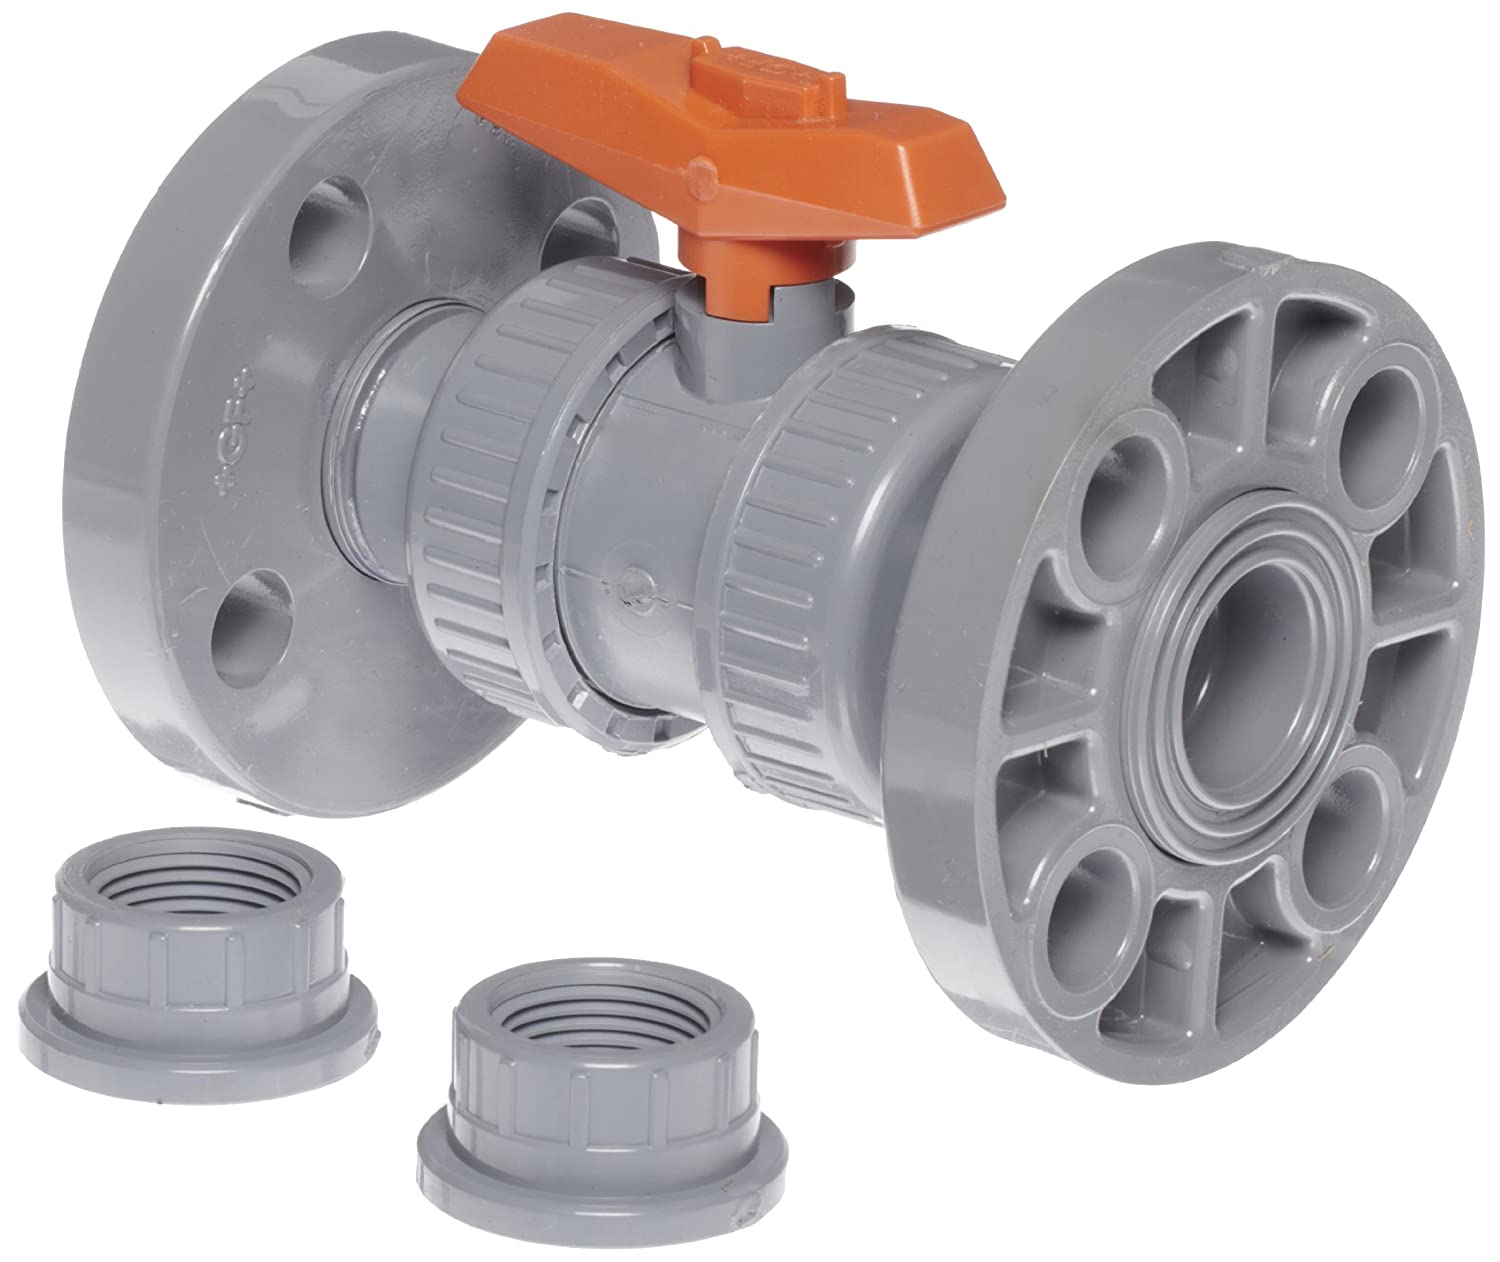 Gf piping systems cpvc true union ball valve two piece